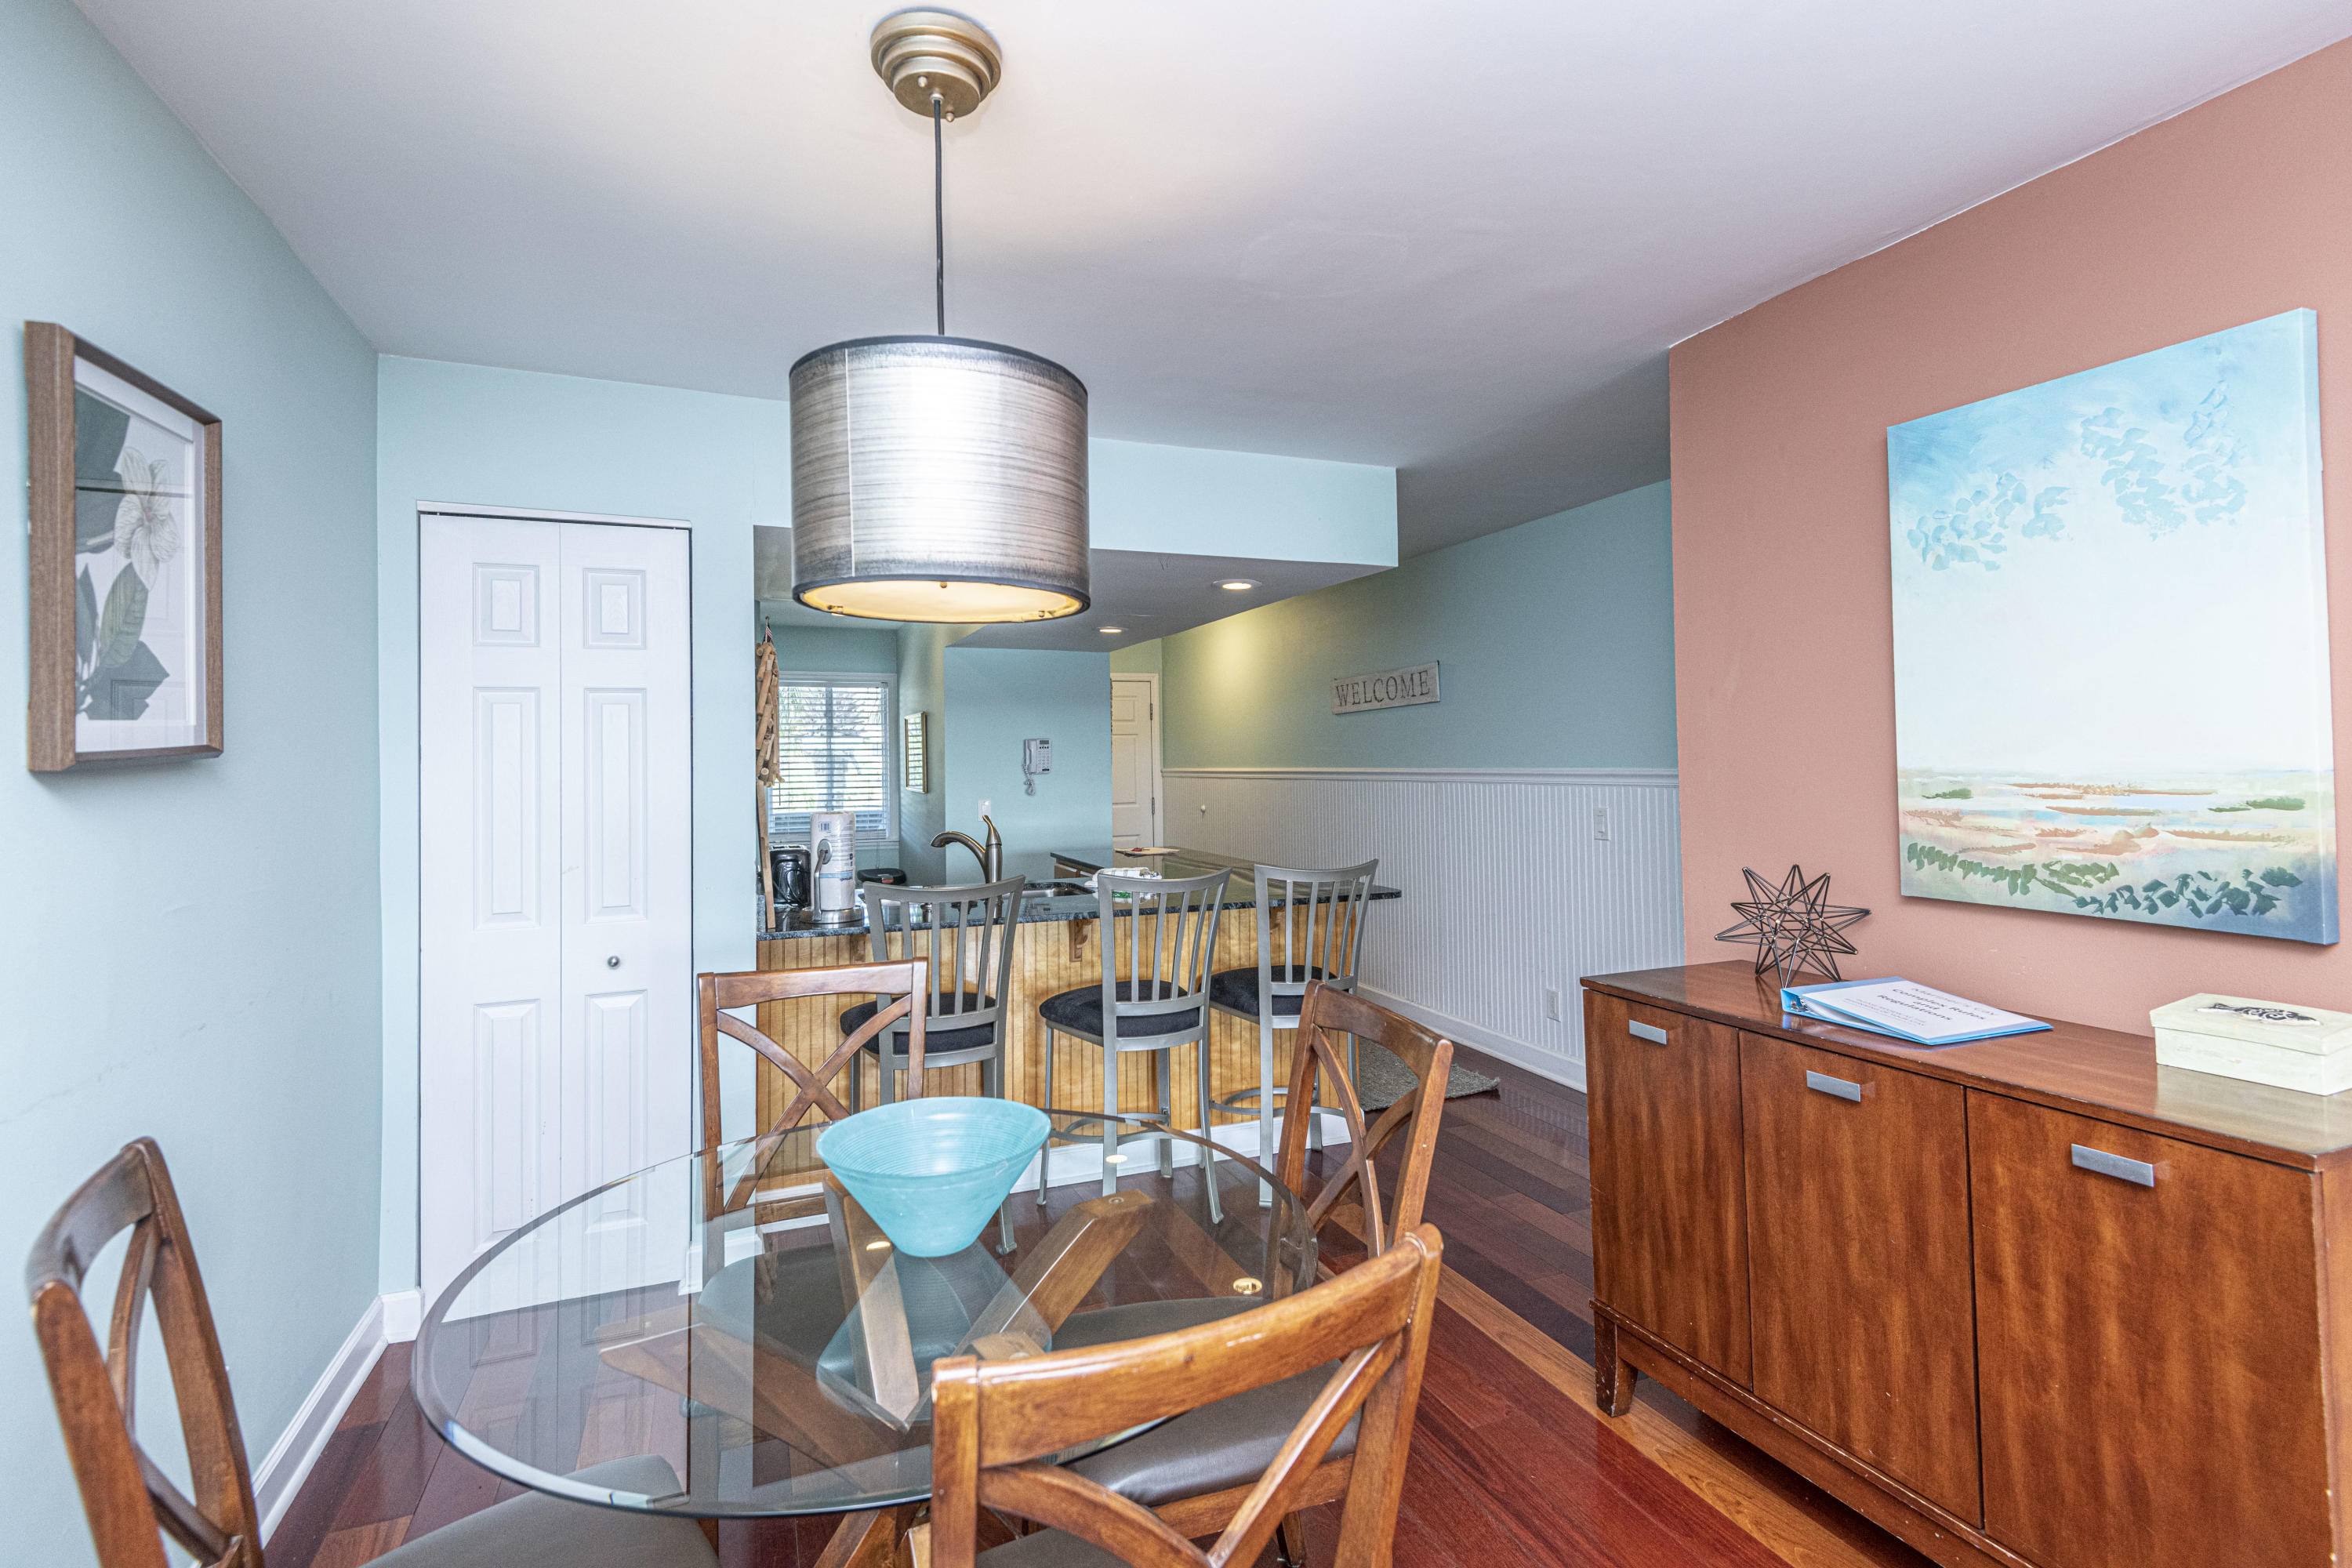 Mariners Cay Homes For Sale - 60 Mariners Cay, Folly Beach, SC - 37